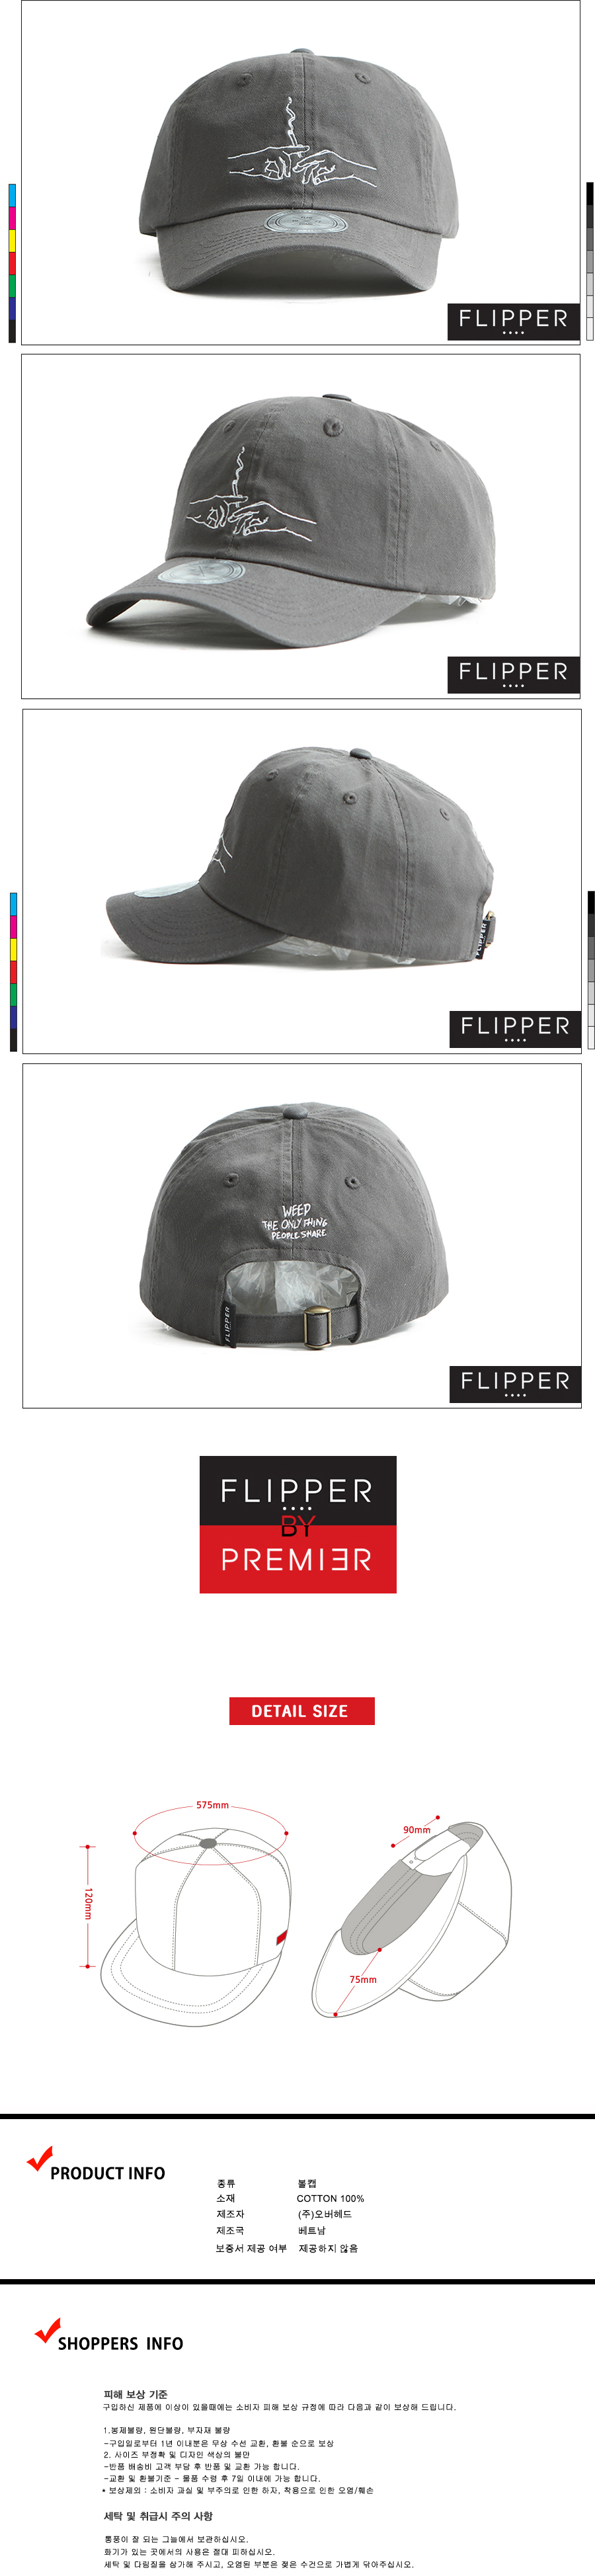 [ PREMIER ] [Premier] Flipper Ball Cap Weed Share Charcoal (FL081)